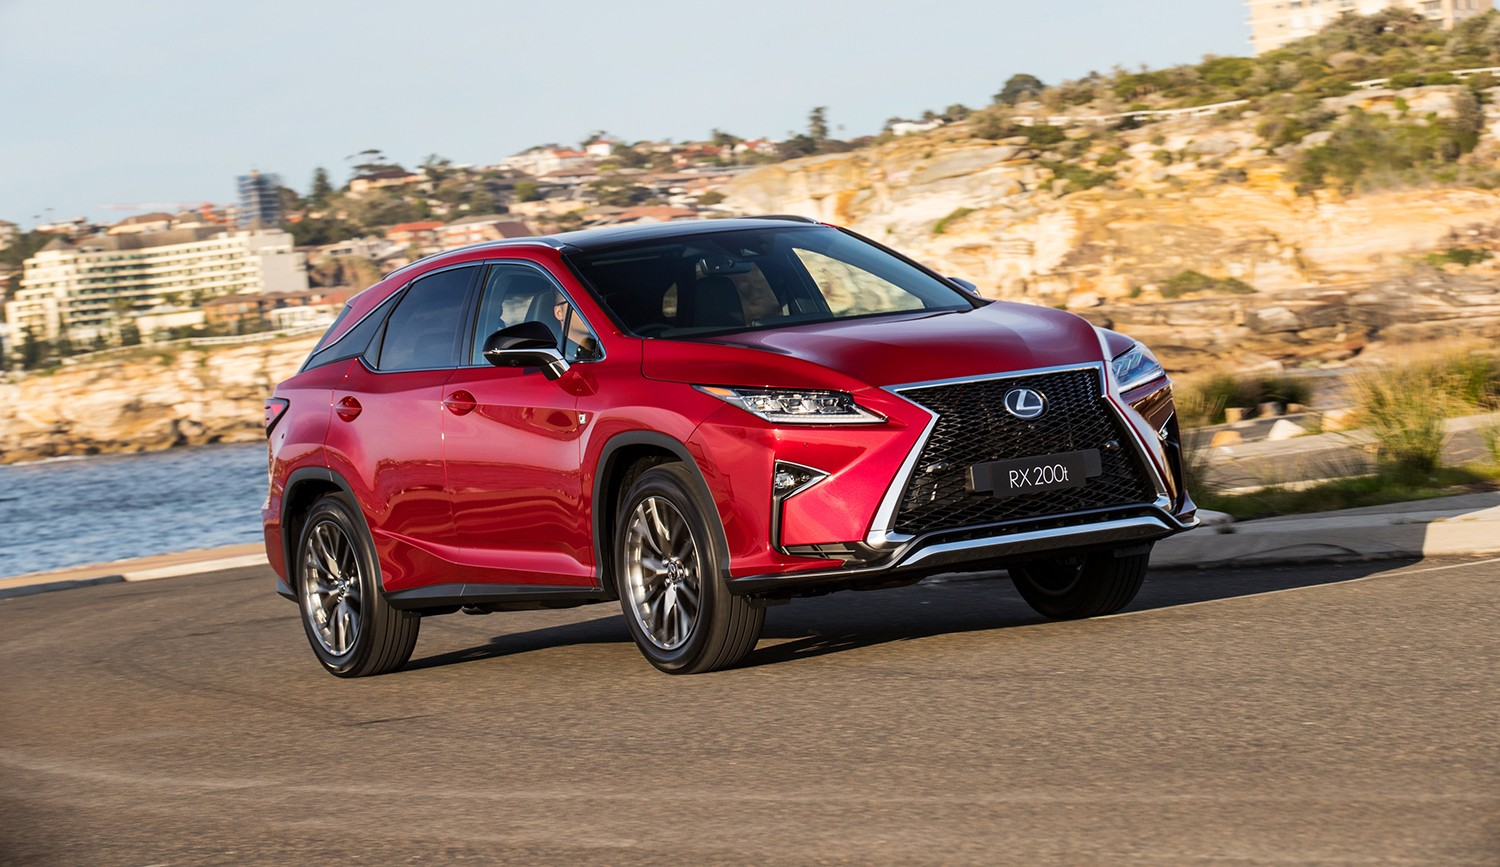 2017 lexus rx 200t f sport launched in australia does 0 to 100 km h in autoevolution. Black Bedroom Furniture Sets. Home Design Ideas